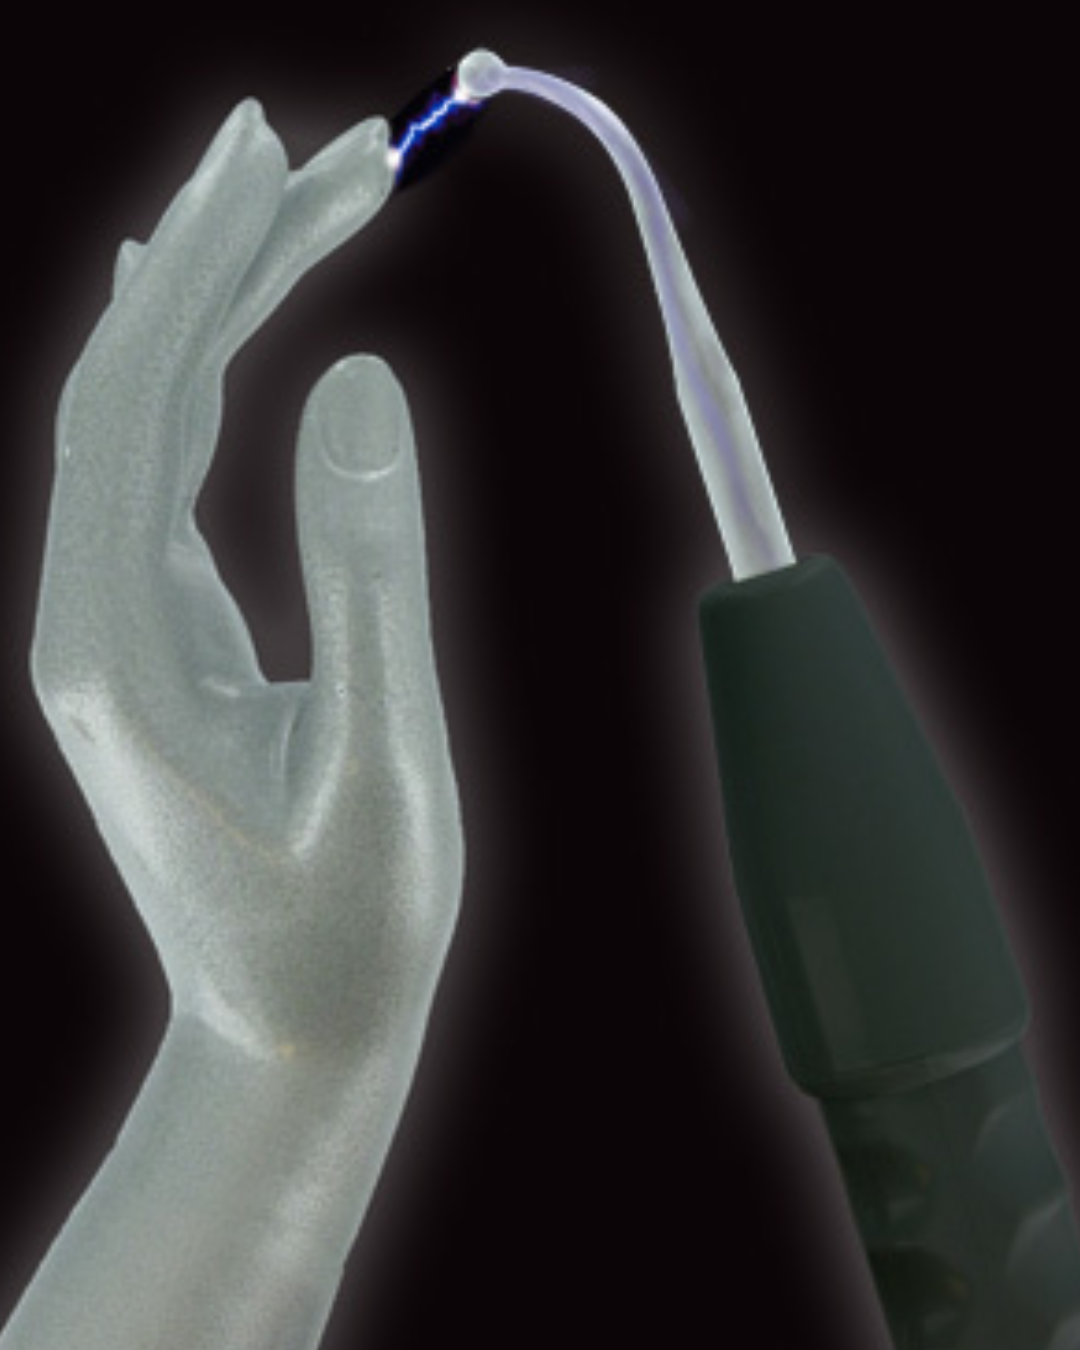 Zeus Twilight Lightning Wand Electro Stimulation Kit lighting up when a hand touches it